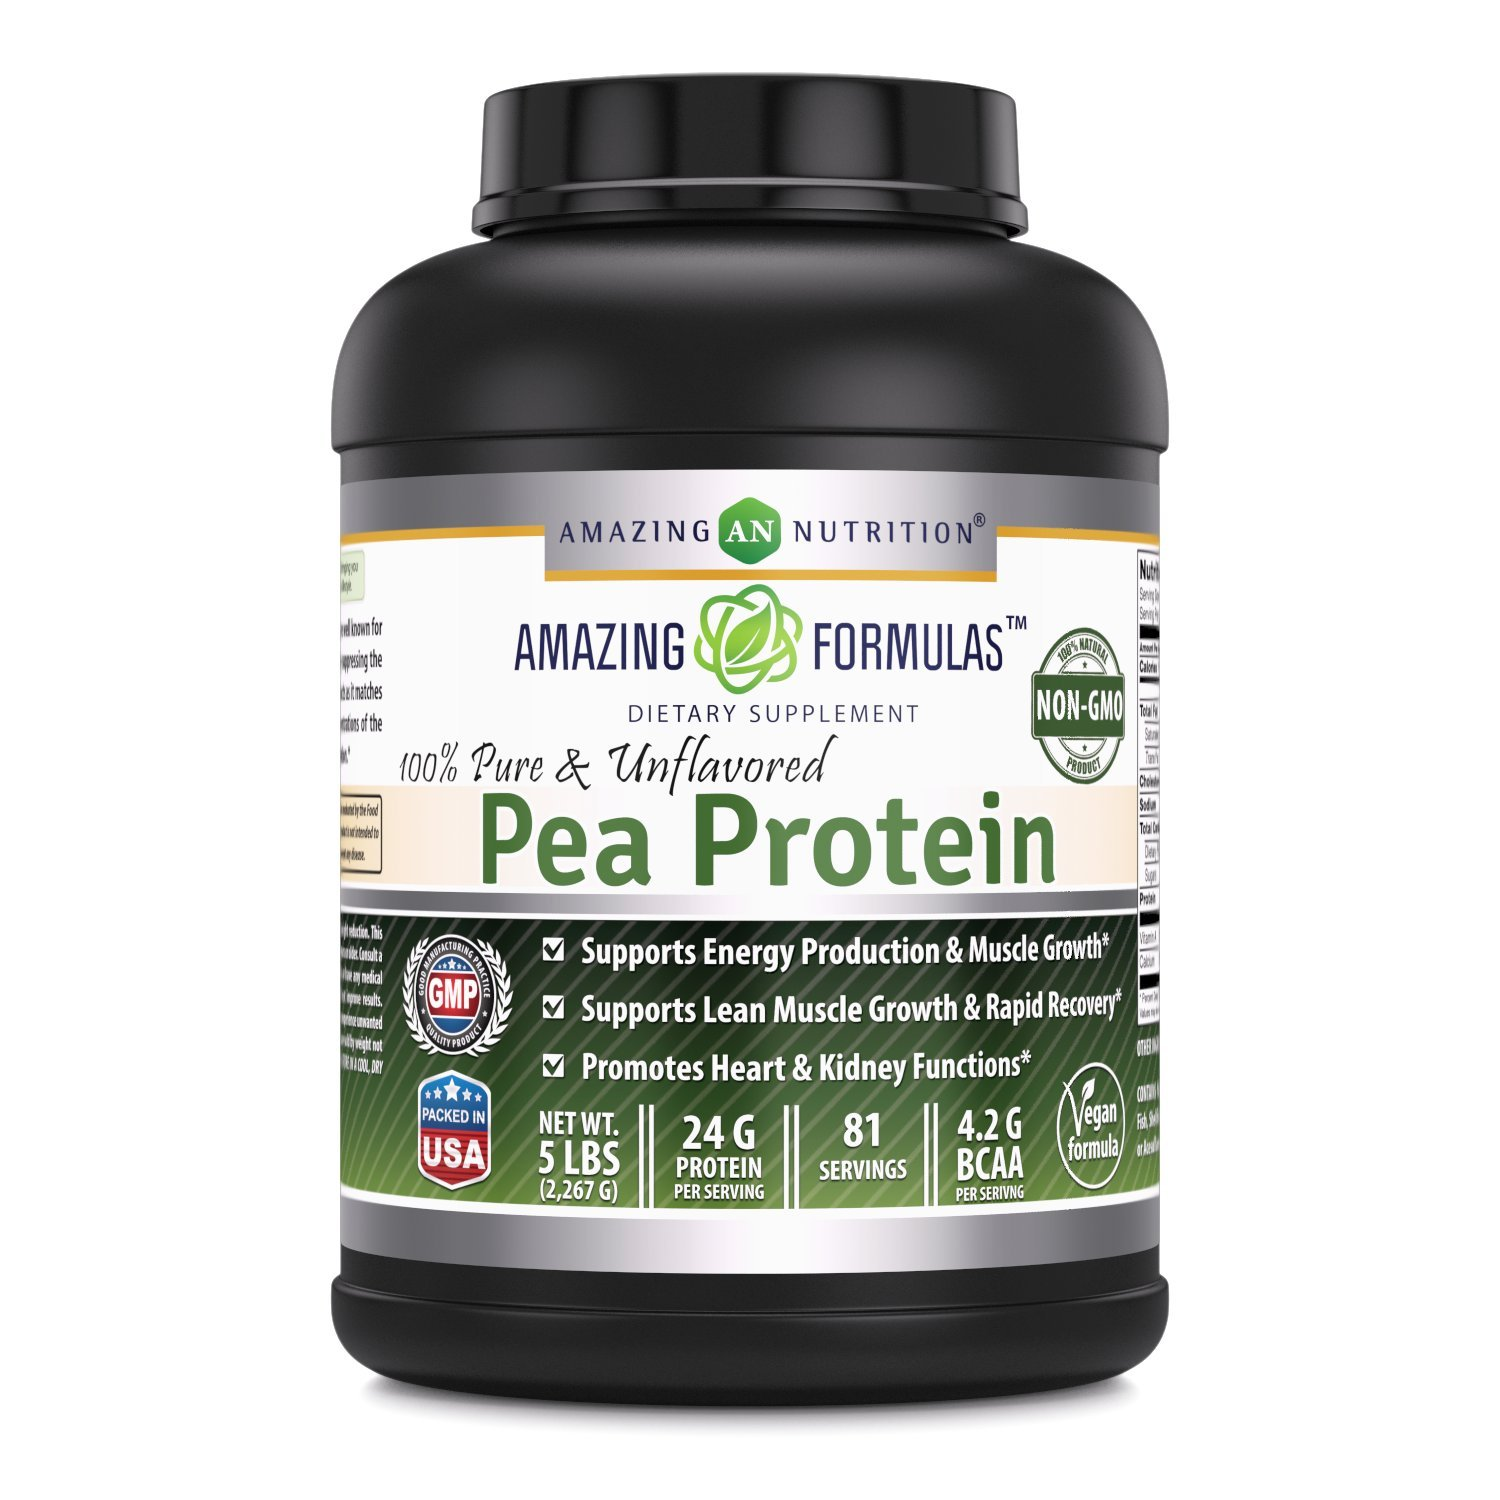 Amazing Formulas 100% Pure & Unflavored Pea Protein Dietary Supplement - 5 lbs (Non-GMO) - Supports Energy Production and Muscle Growth - Promotes Heart and Kidney Function